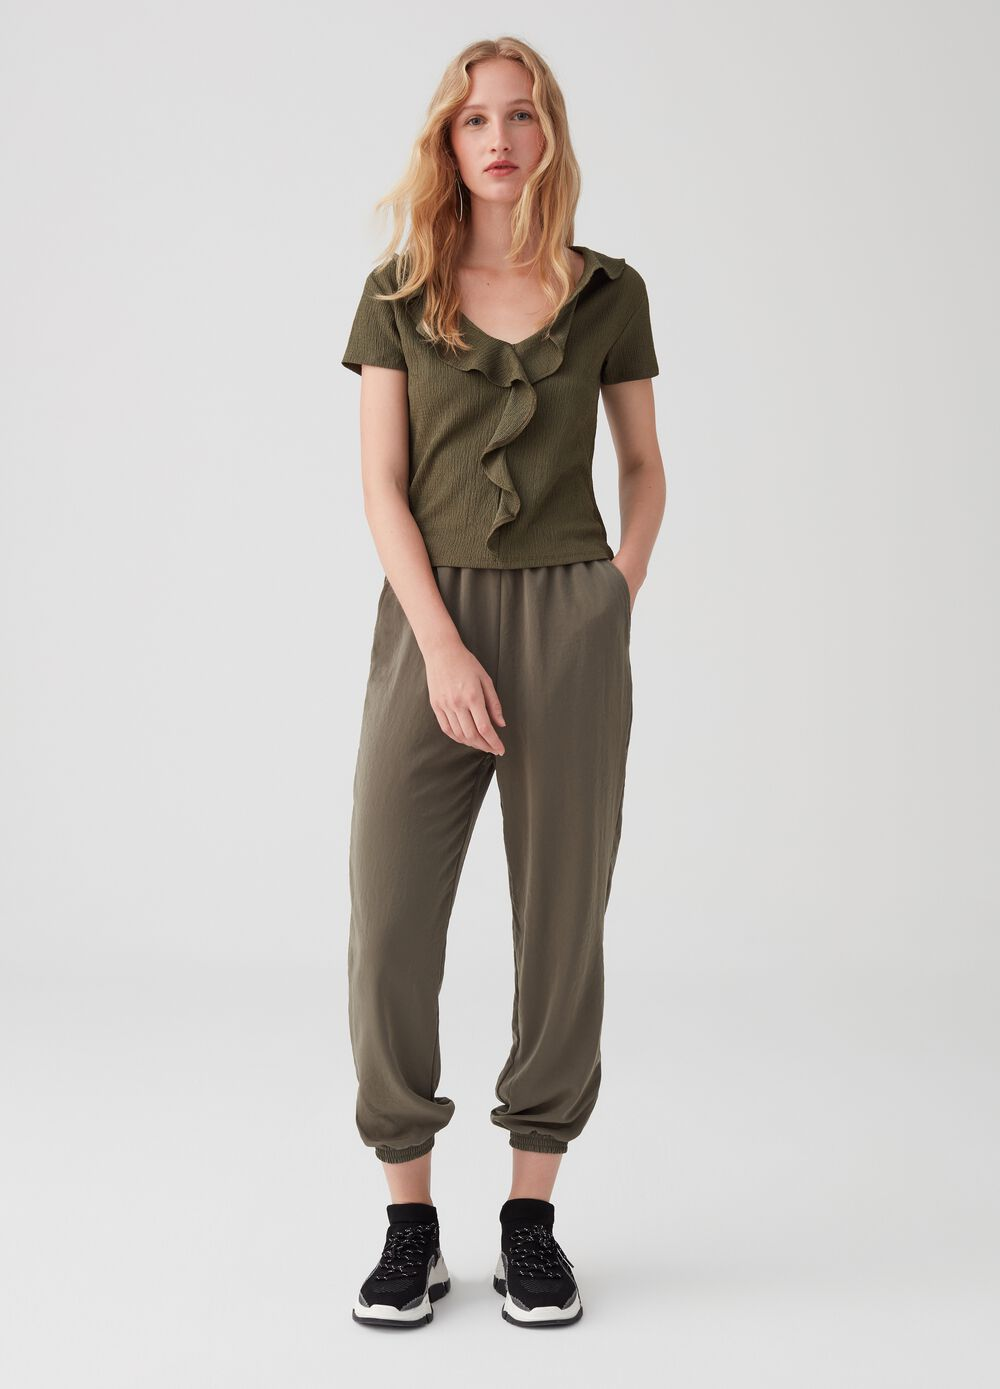 Trousers with pockets and cuff at the bottom